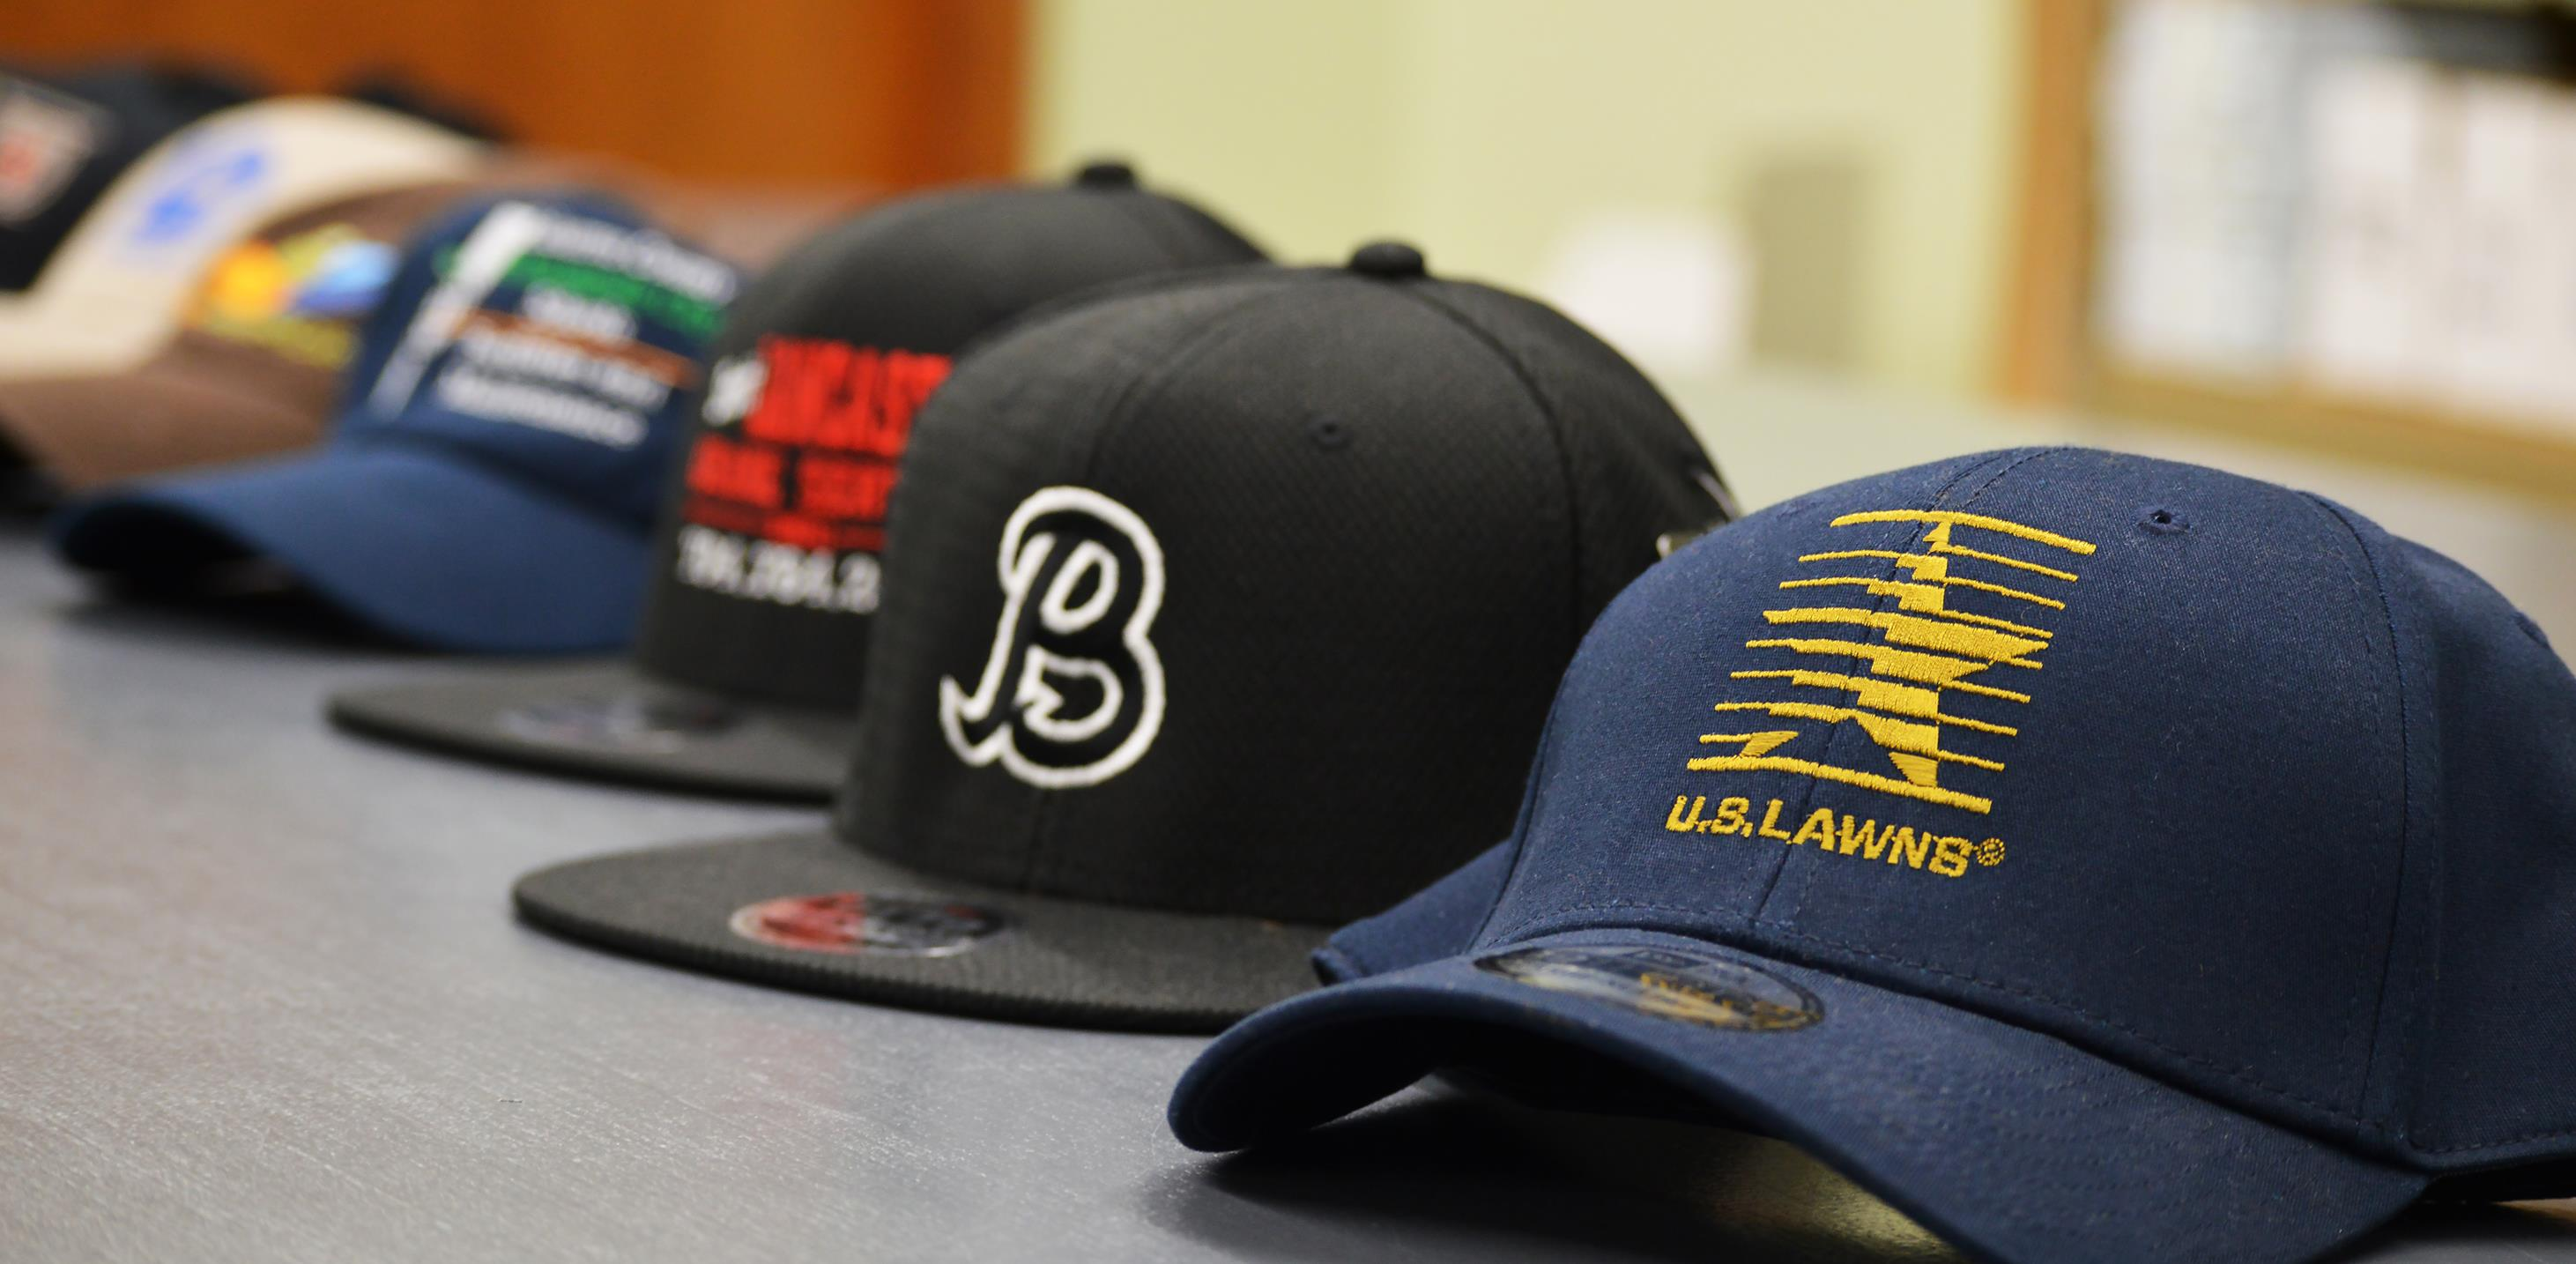 Embroidered hats Concord, NC